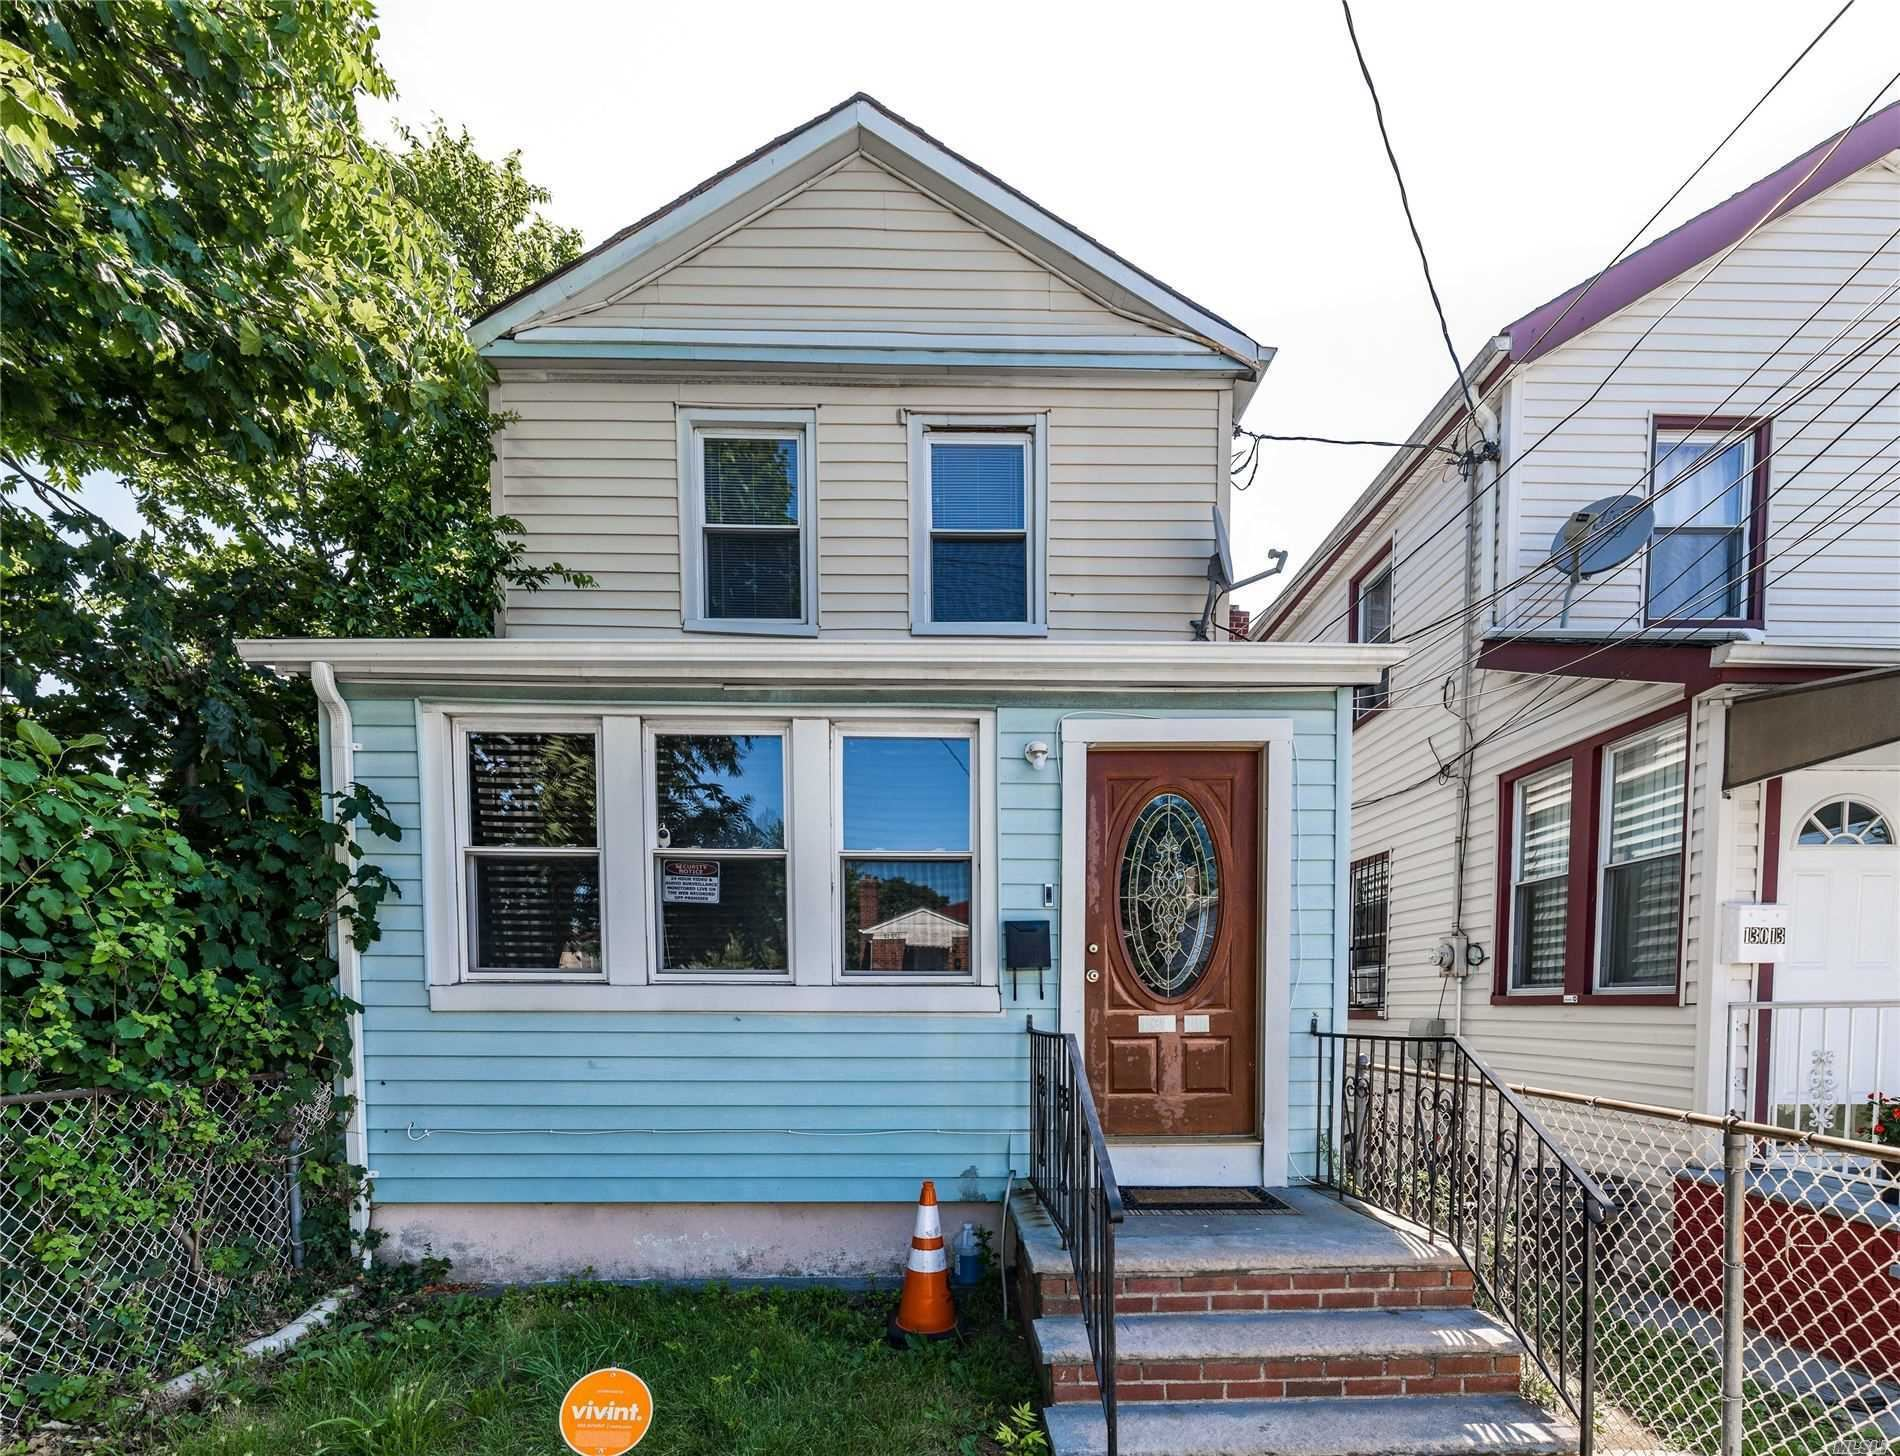 130-11 148th Street, Jamaica, NY 11436 - MLS#: 3237275